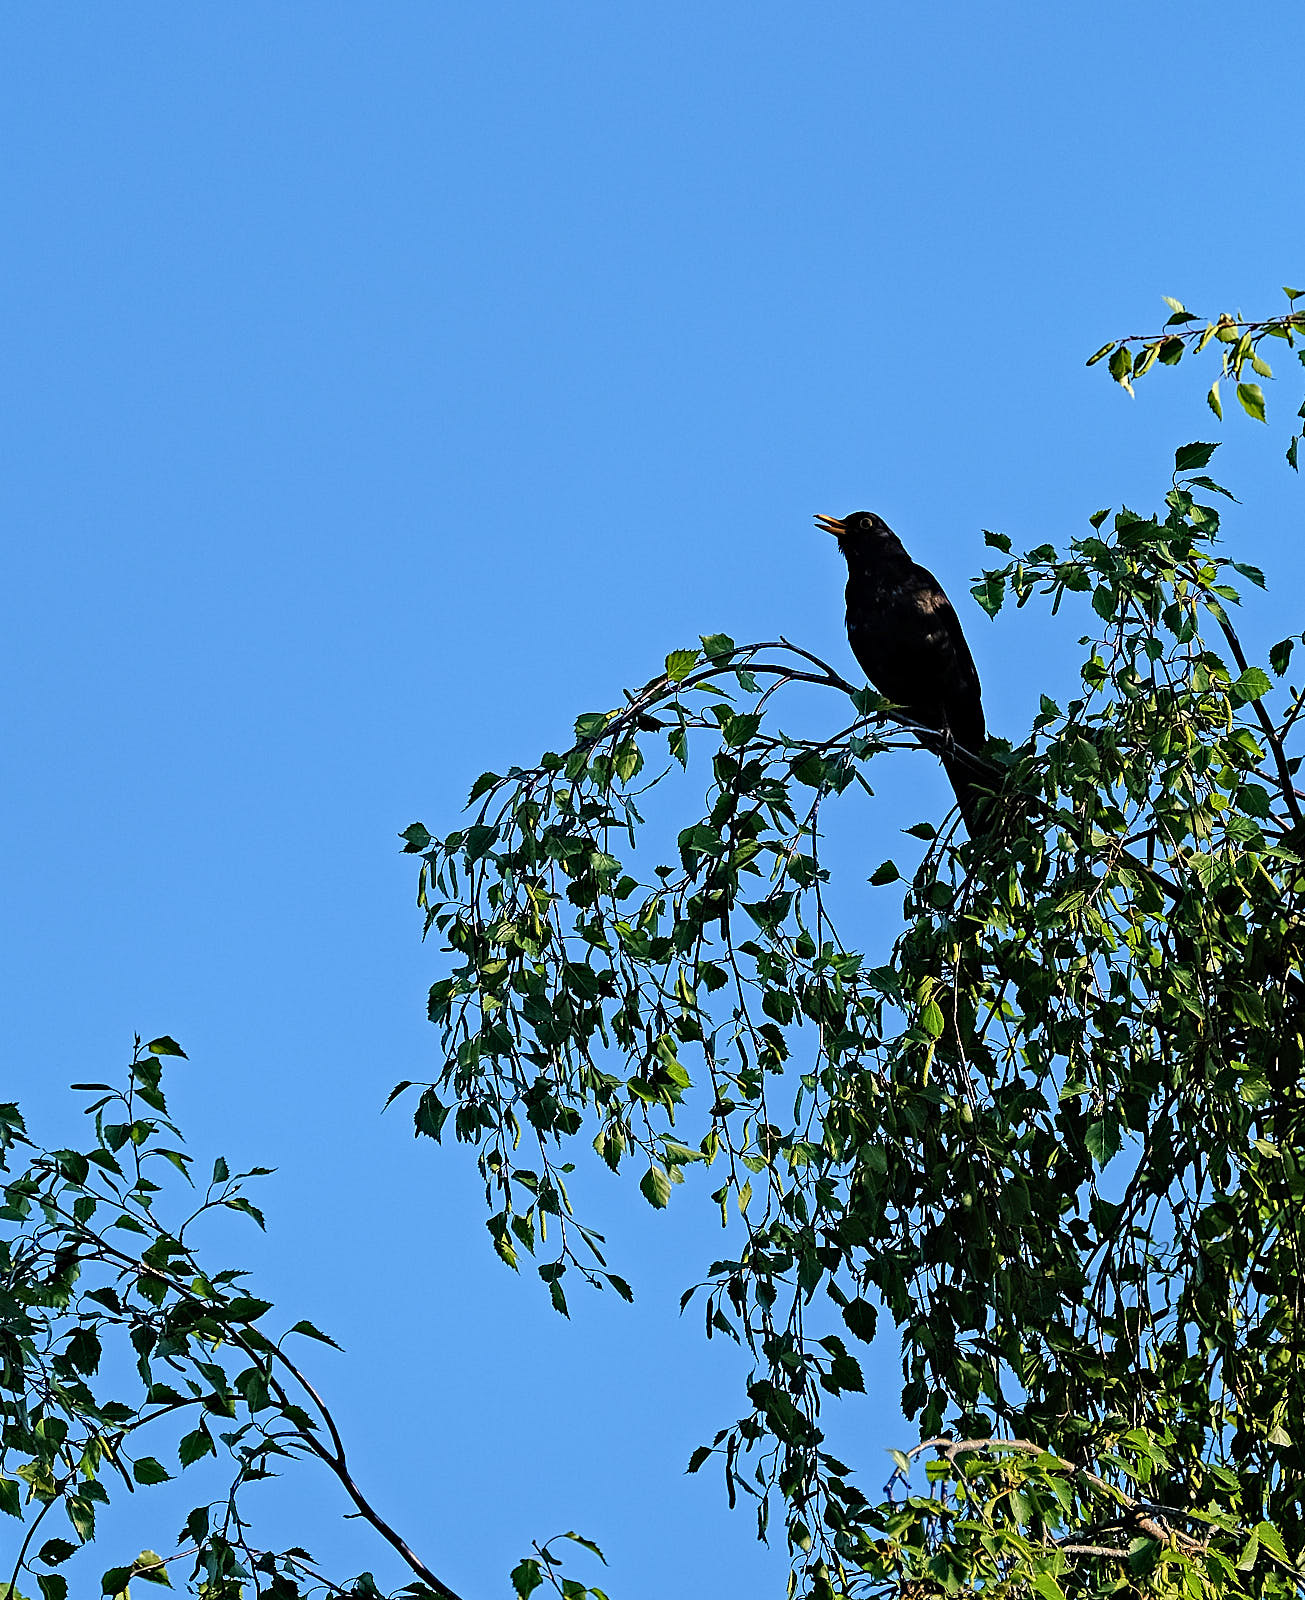 A Blackbird on a tree